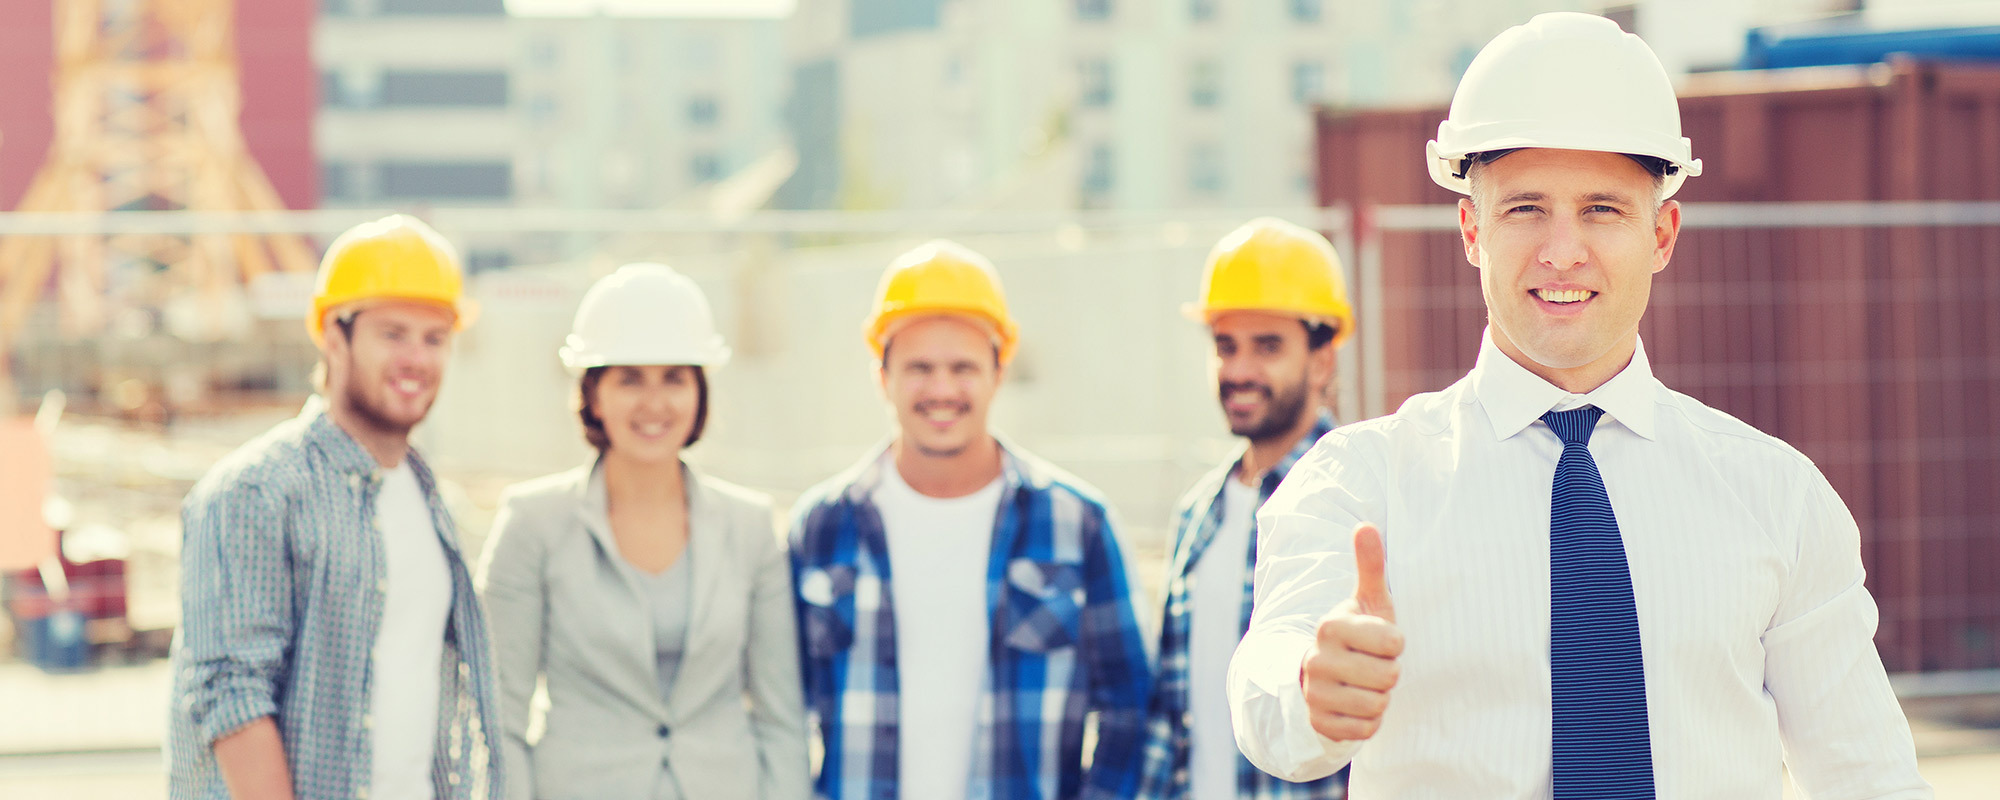 Professional experts building approval team